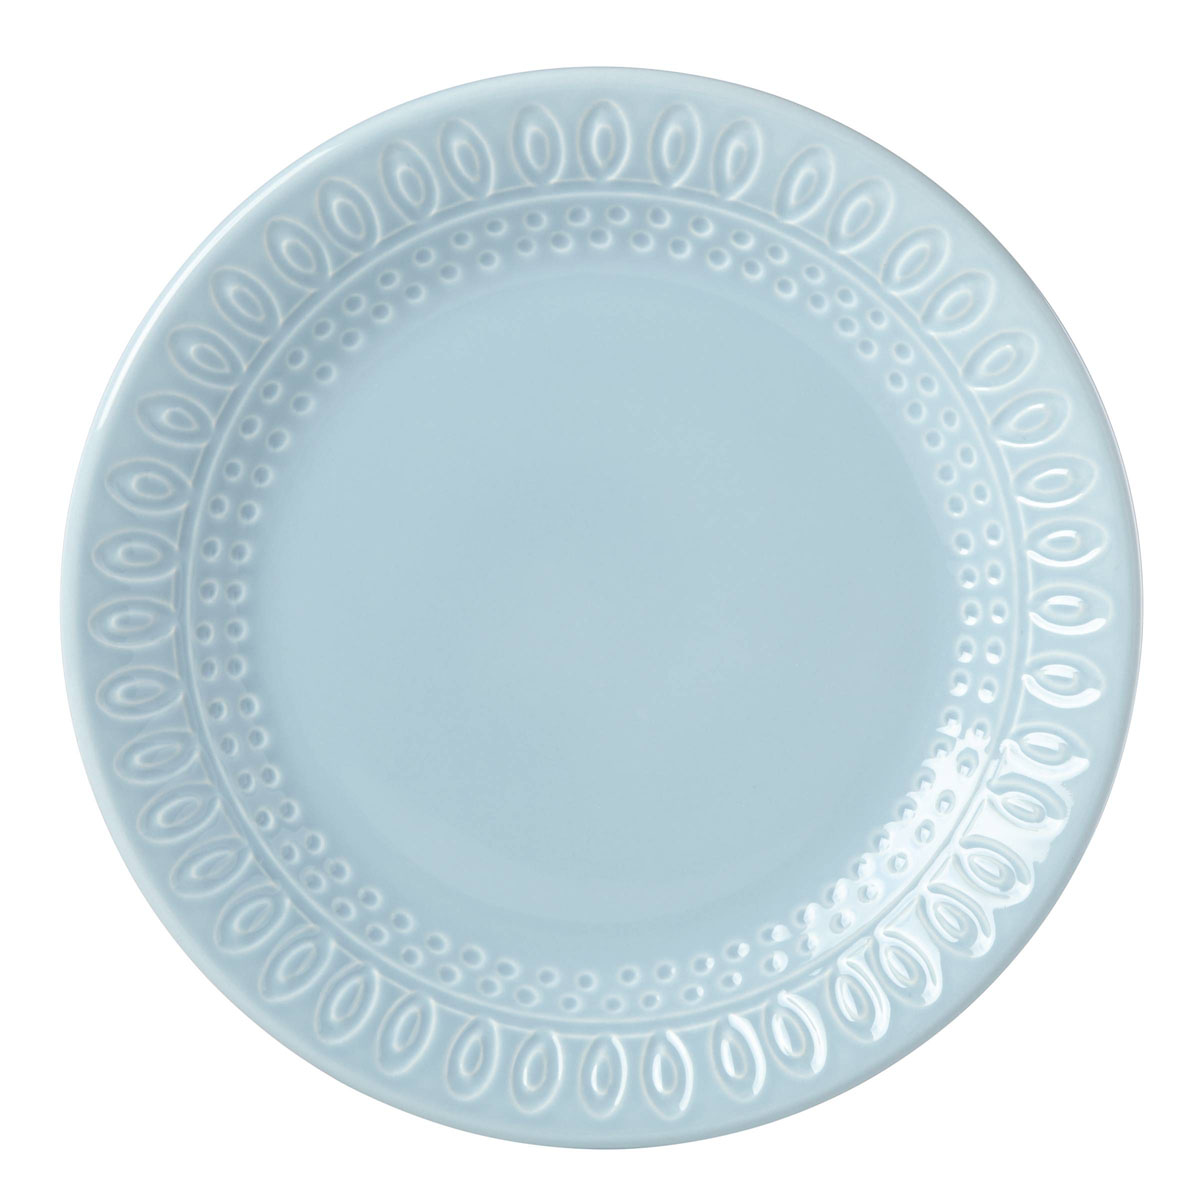 Kate Spade China by Lenox, Willow Drive Blue Accent Plate